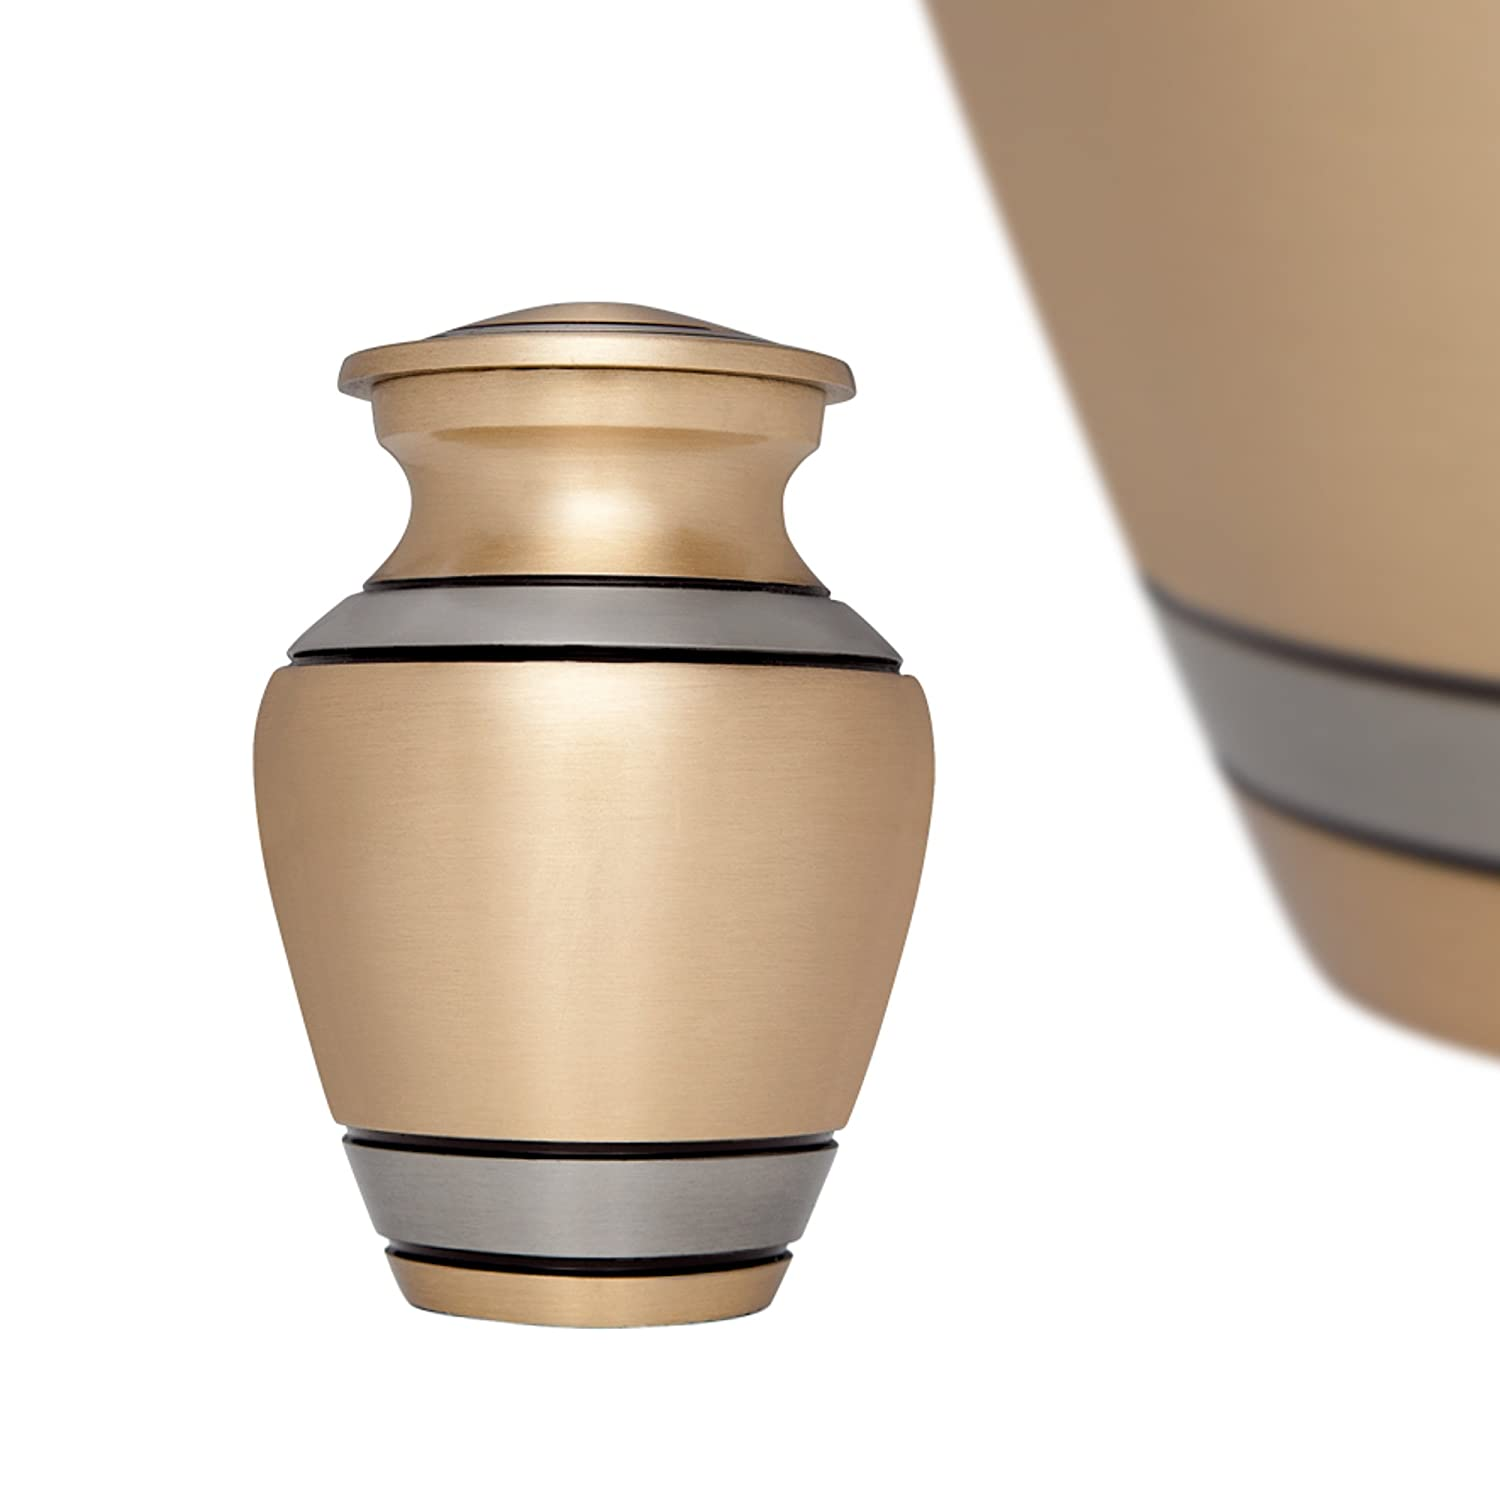 Liliane Memorials Silver Funeral Cremation Urn for Human Ashes Hand Made in Brass- Suitable for Cemetery Burial or Niche- Large Size fits remains of Adults up to 200 lbs - Peaceful Embrace Silver